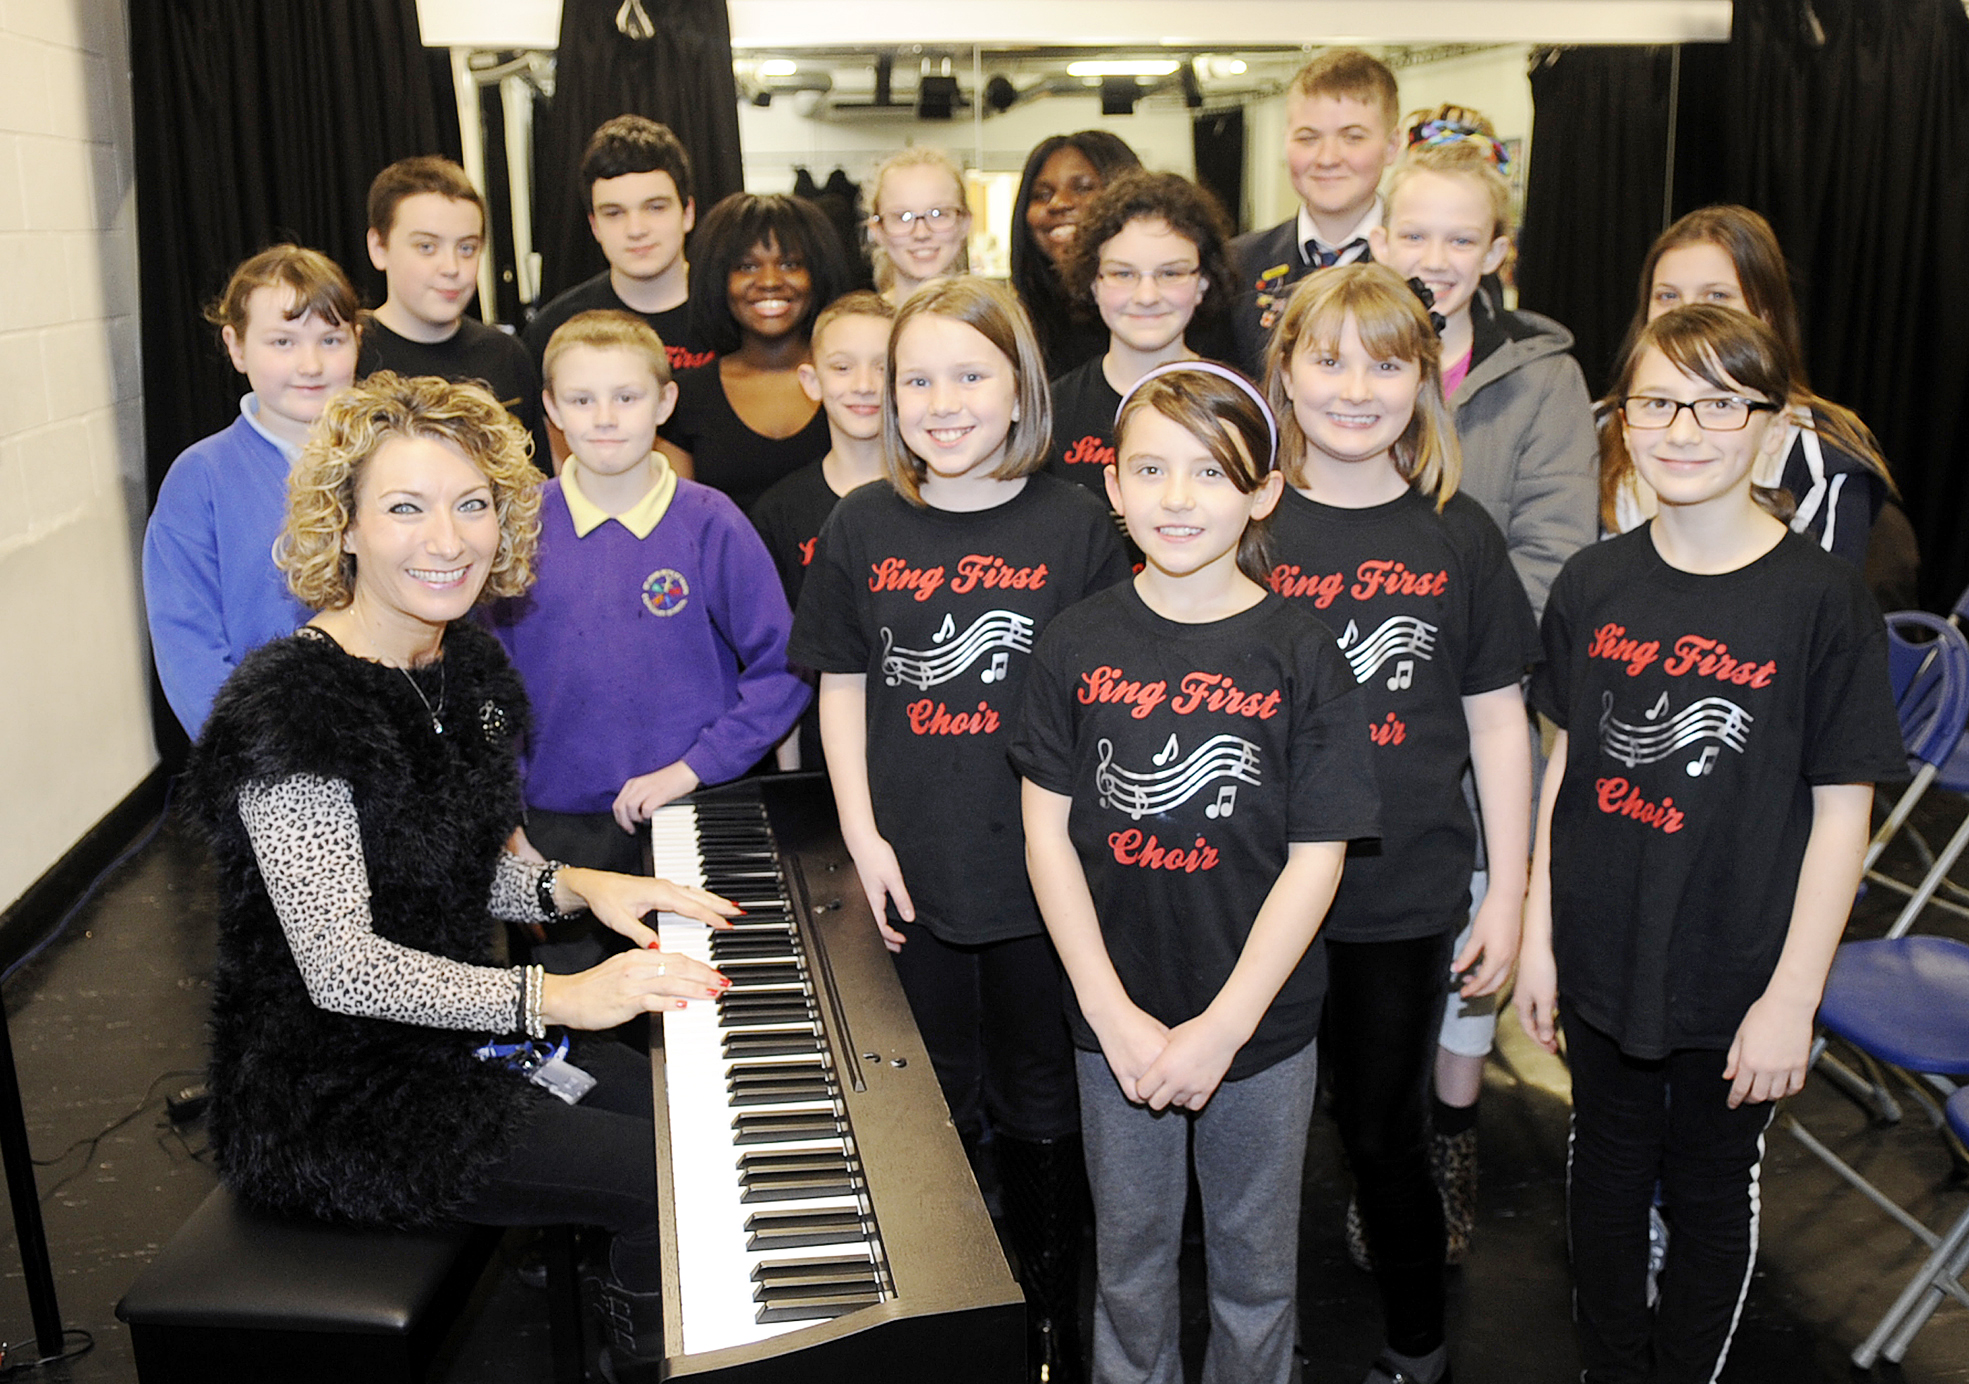 Musical director of Sing First Bury Katie Geelan with the choir at rehearsals